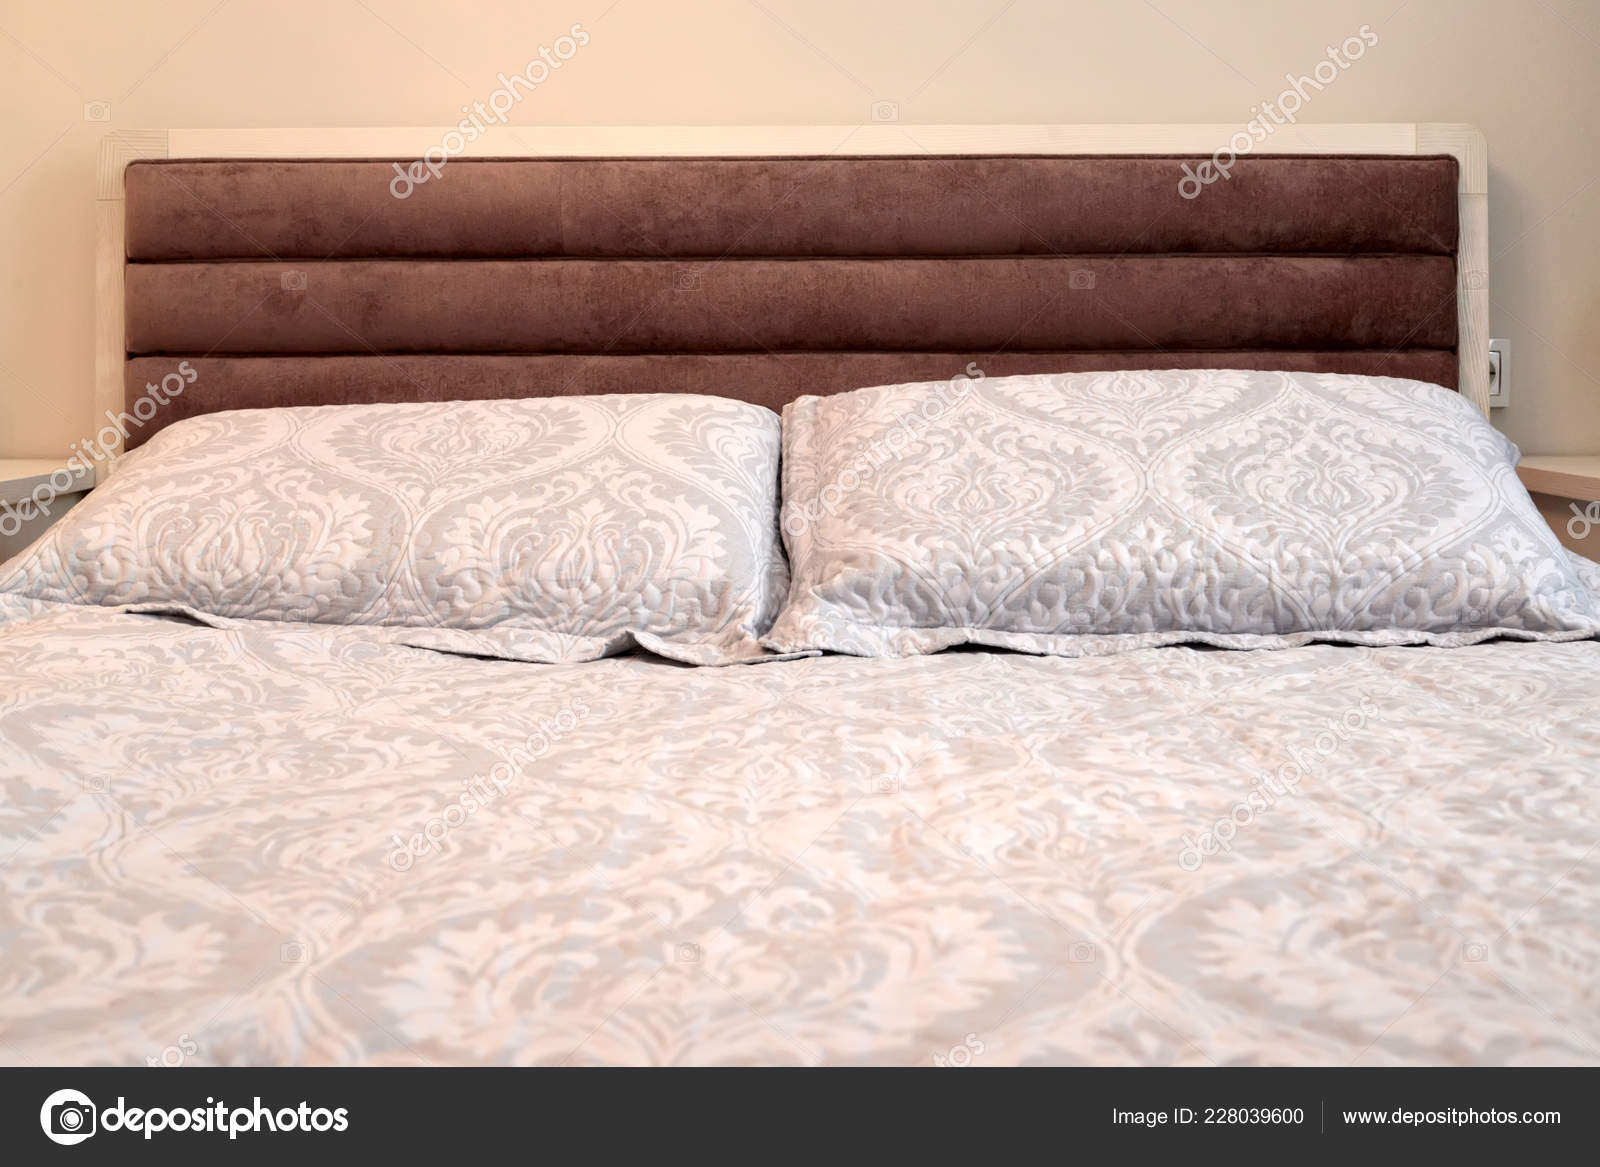 headboard double bed pillows scandinavian style stock photo image by c vodolej 228039600